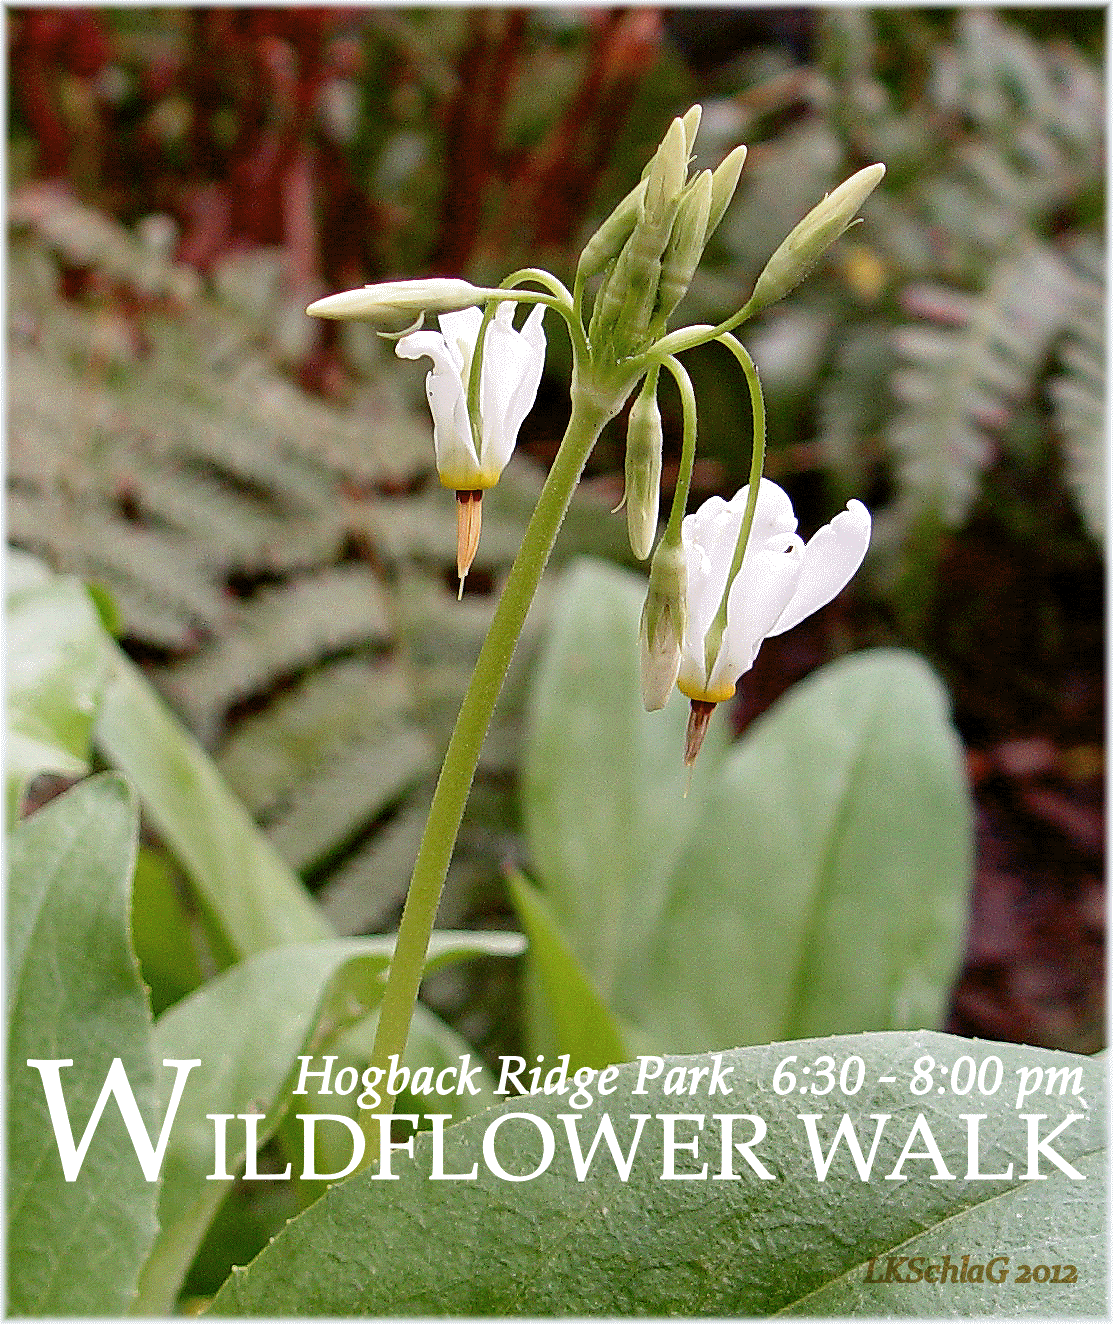 midweek wildflower walk 8 May 2019 at Hogback Ridge Park